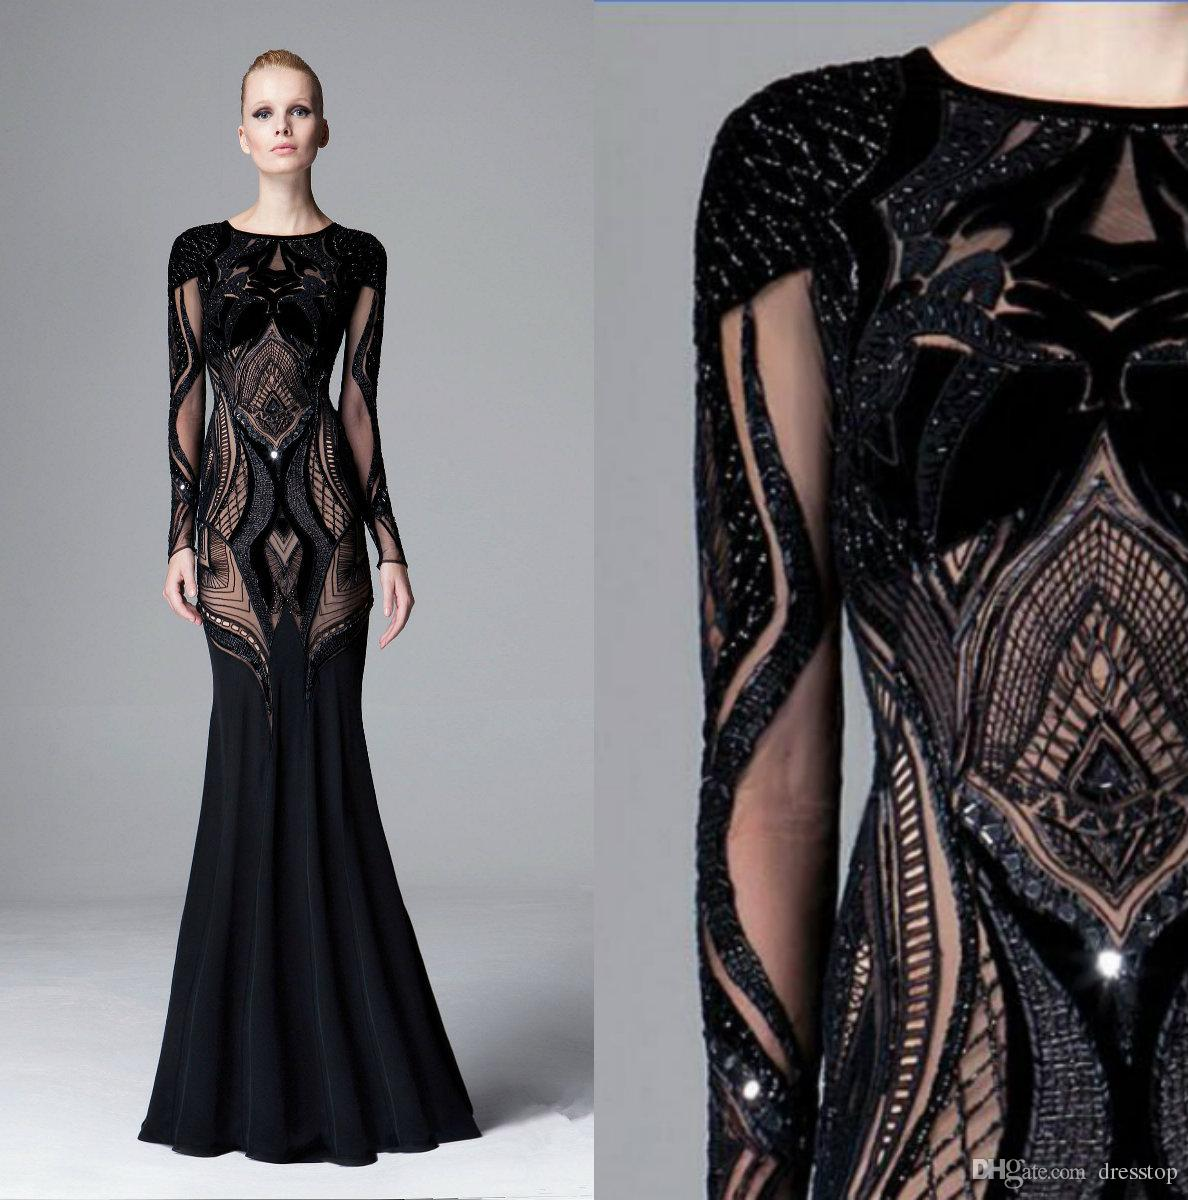 Zuhair Murad Dresses Evening Wear Long Sleeves Jewel Neck Black Sequined Prom  Dress Floor Length Mermaid Lace Formal Party Gown 2017 Fall Ivory Evening  ... 9fa141d7796d